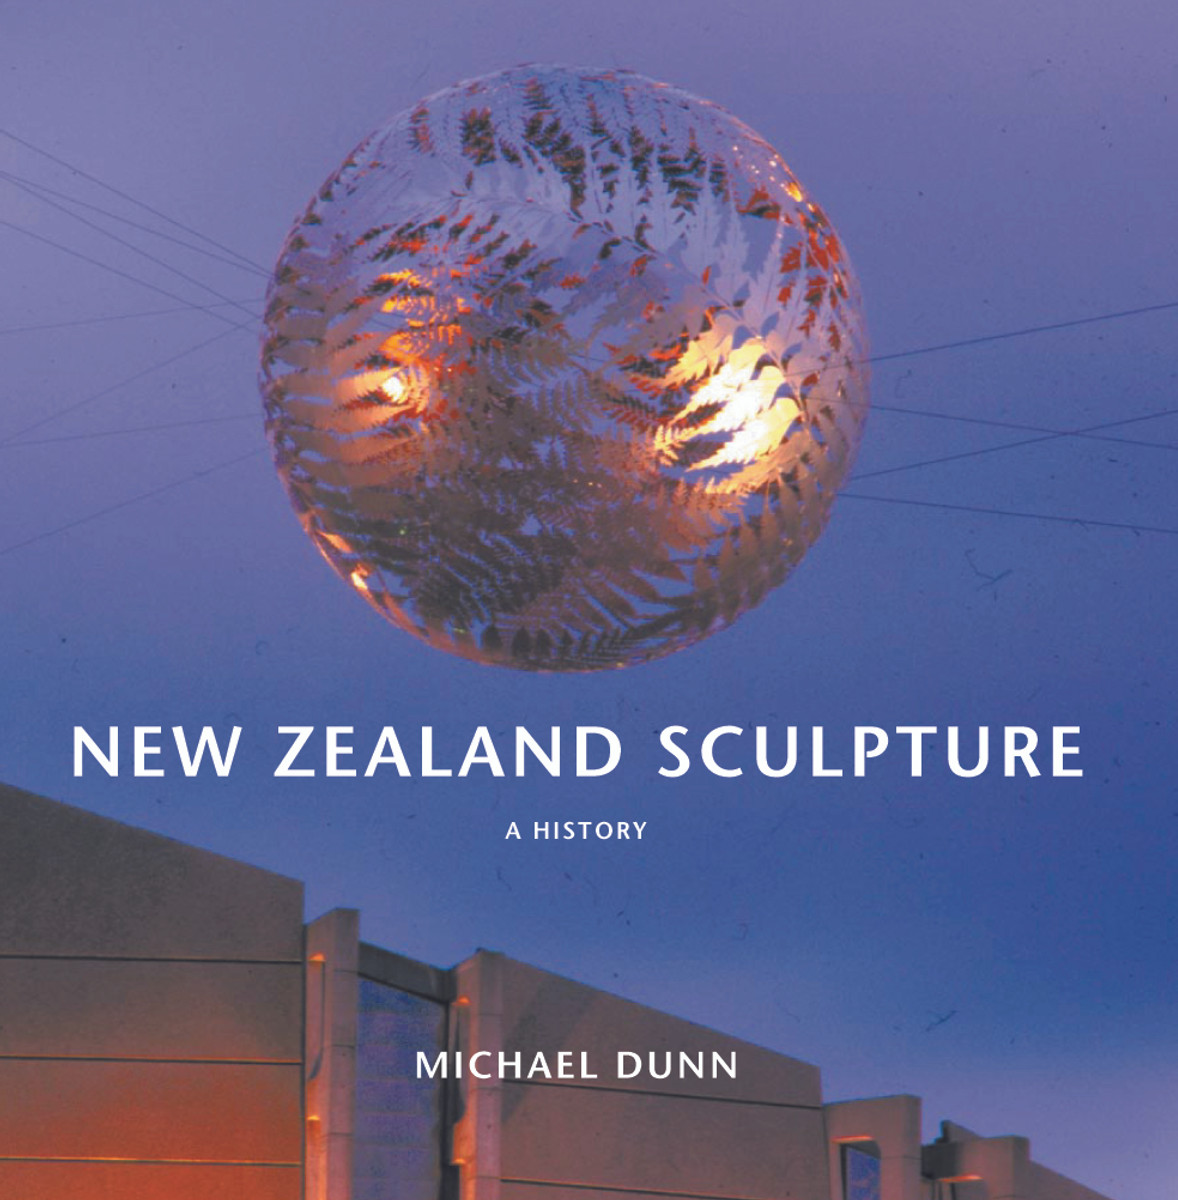 New Zealand Sculpture: A History (Updated edition) by Michael Dunn